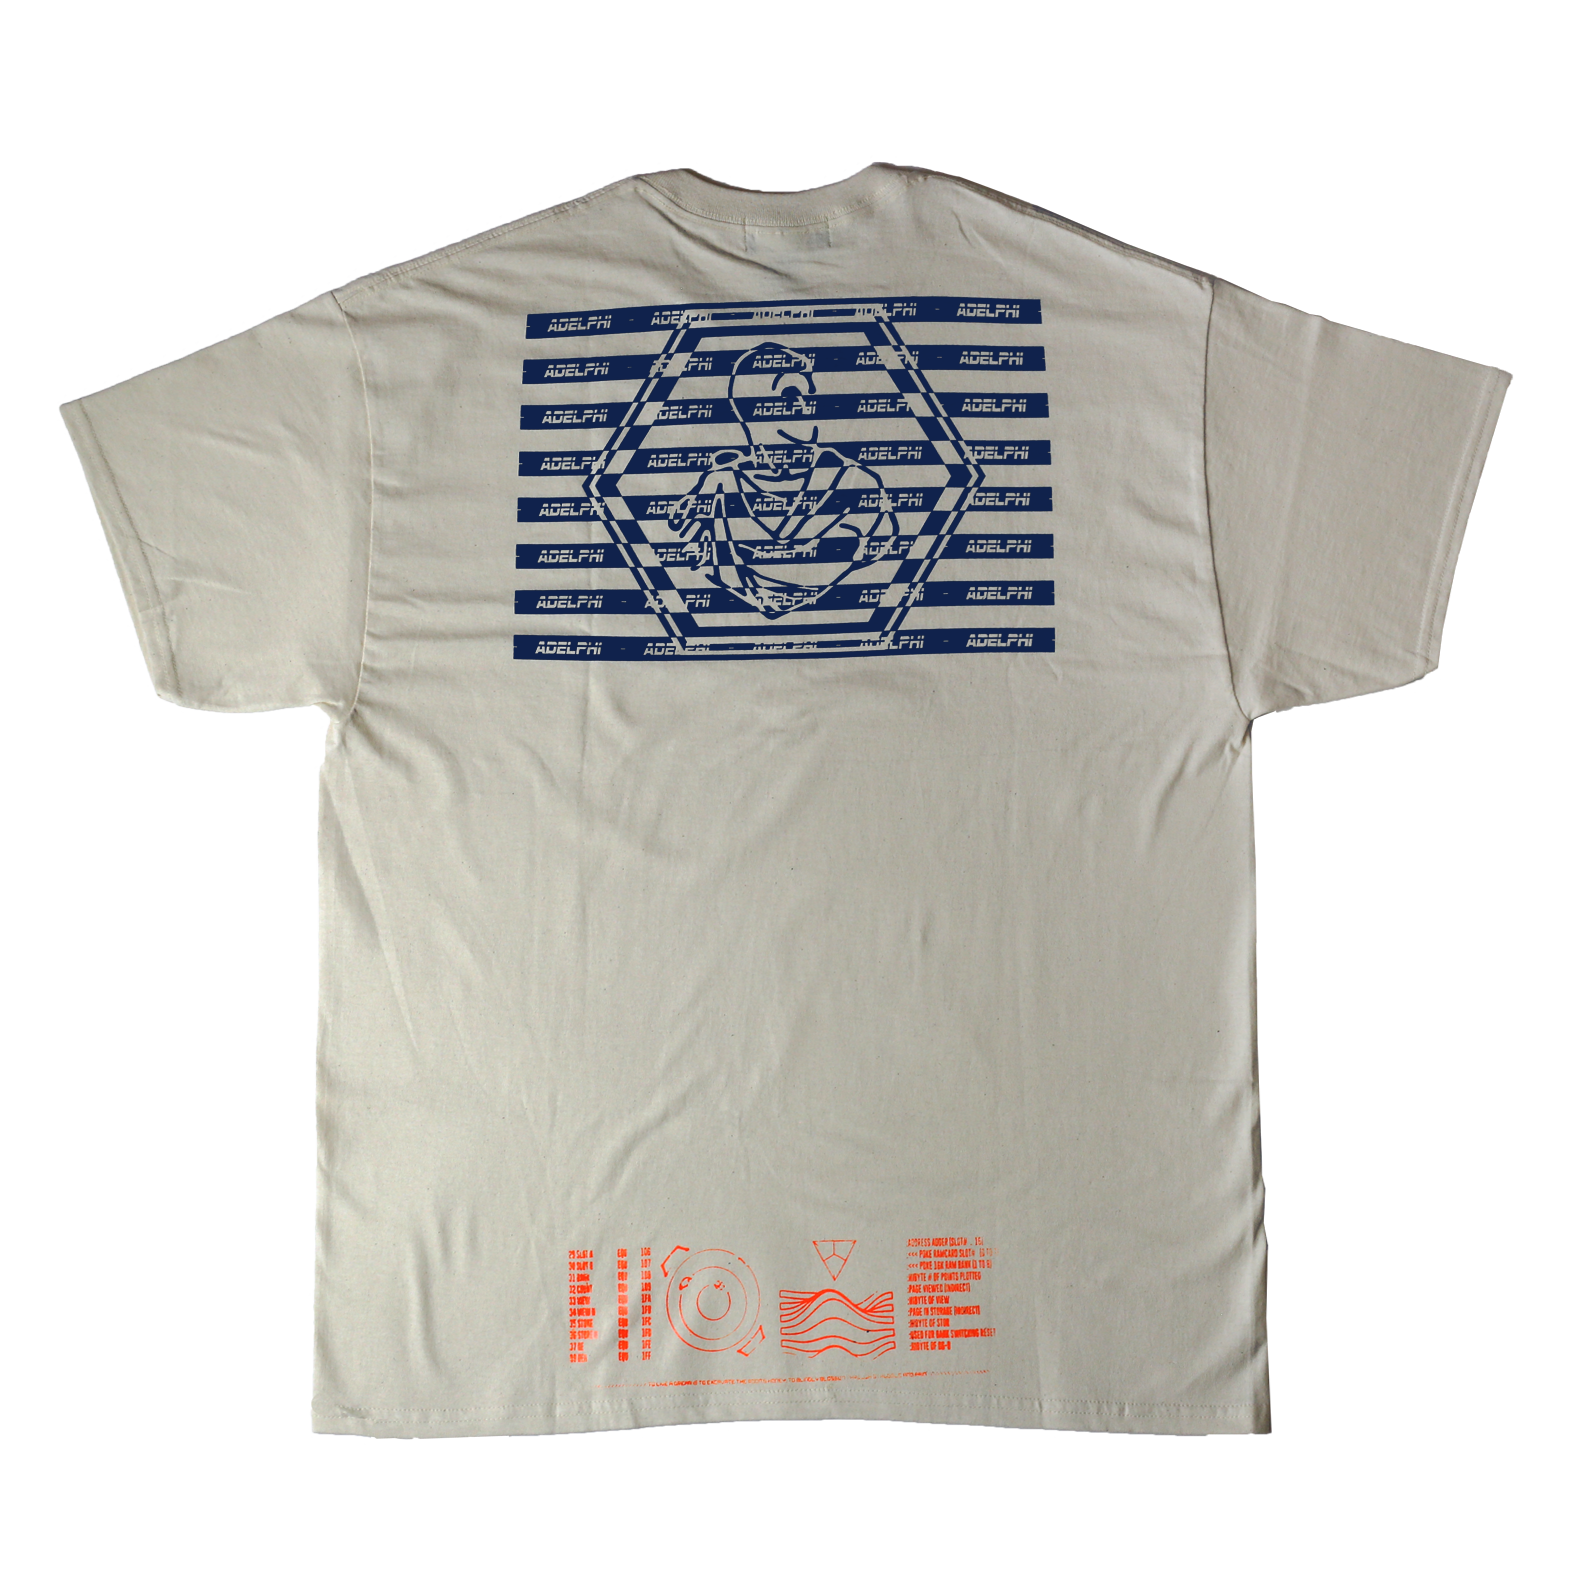 Natural Illusion Tee Back (web).png